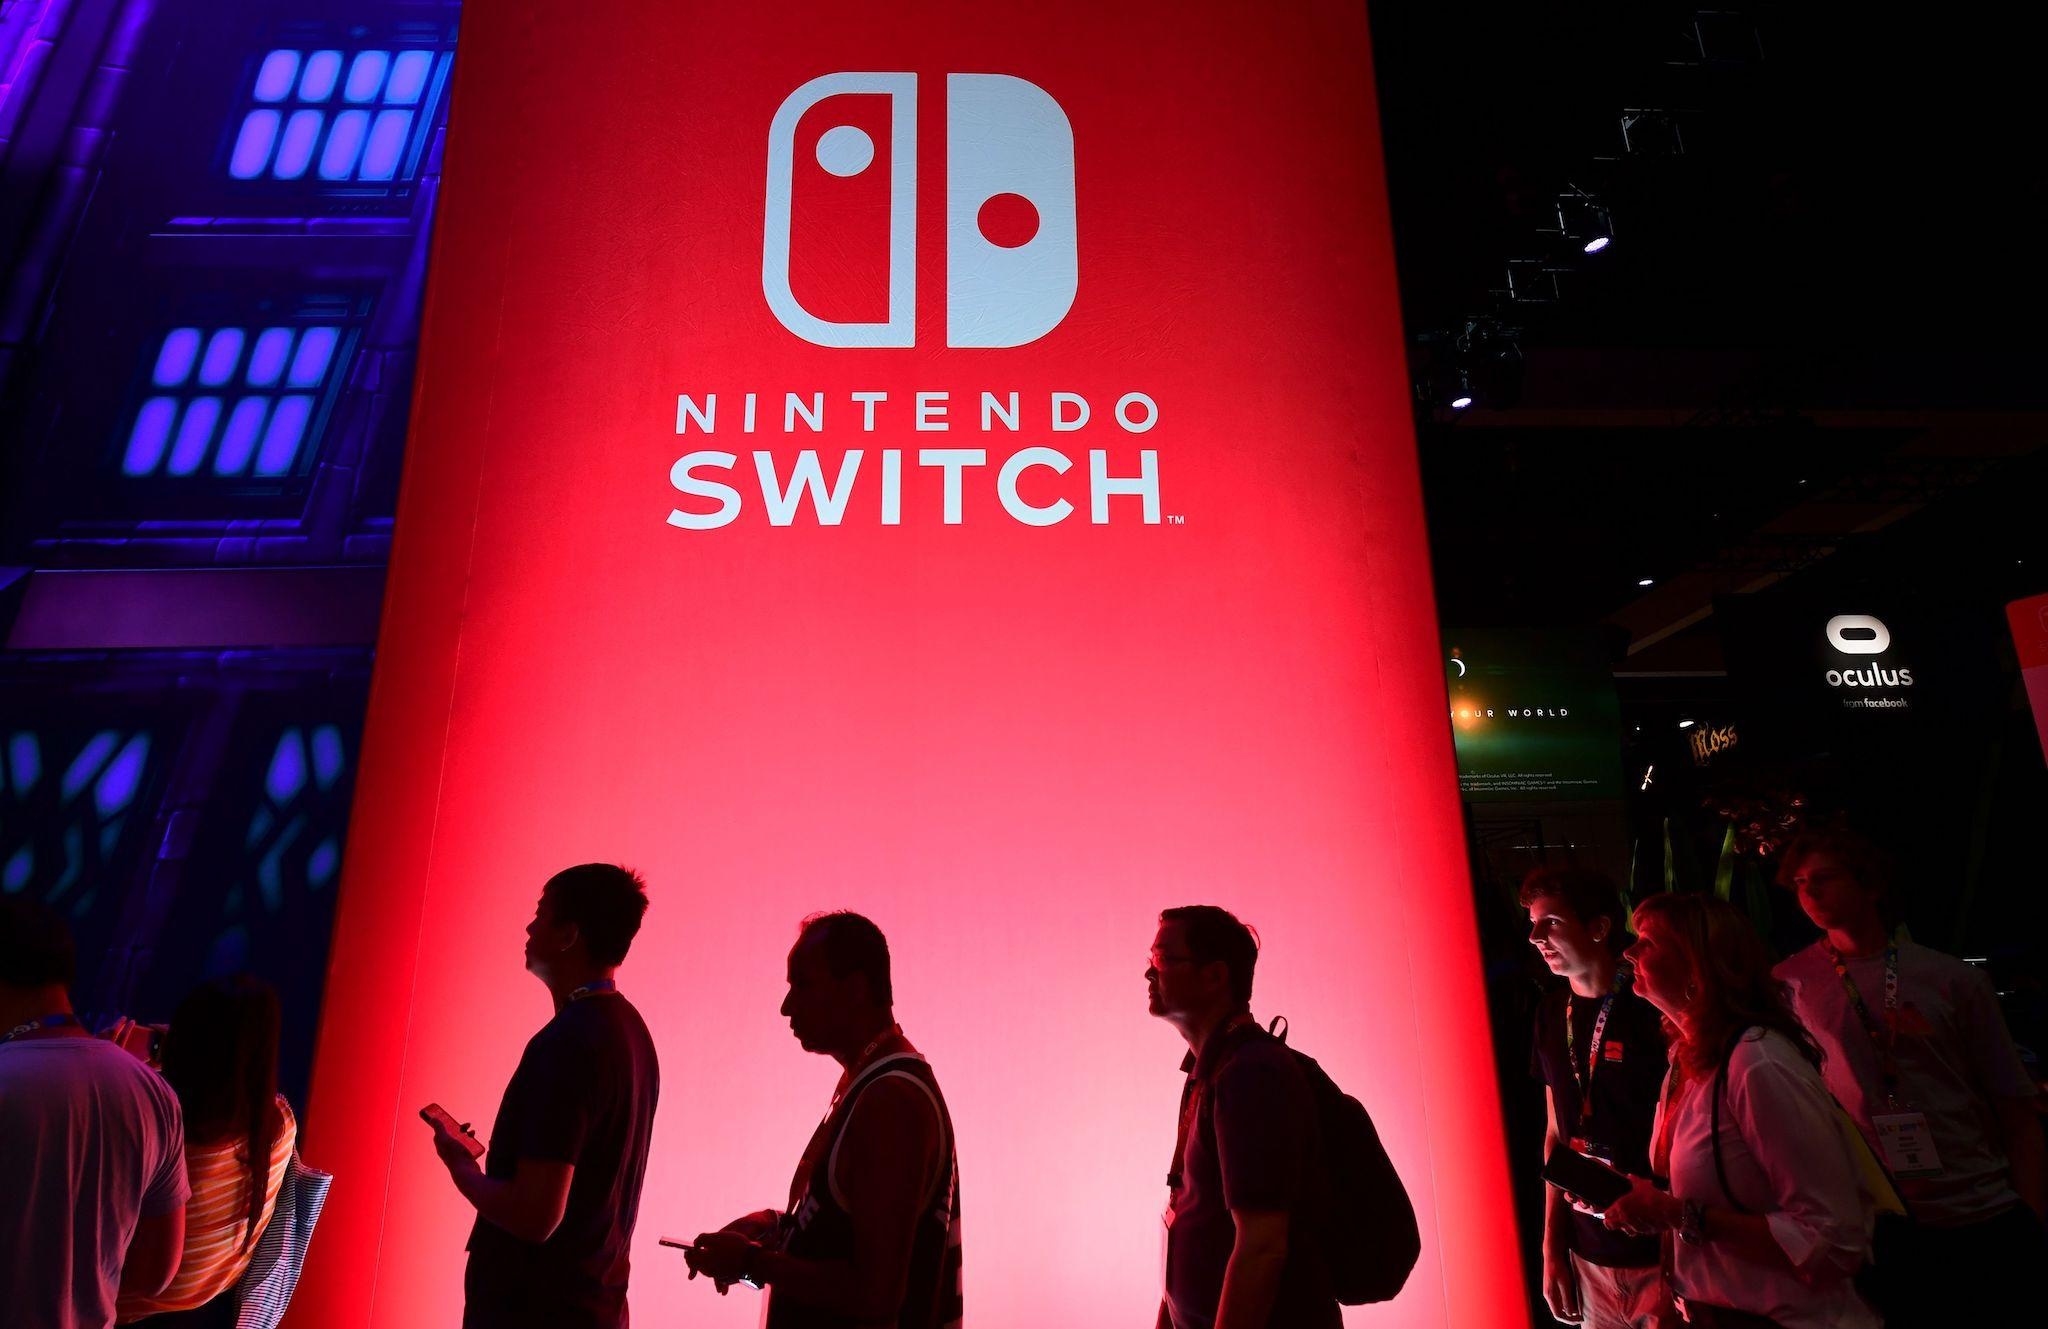 Nintendo Switch Output To Be Boosted As Console Out Of Stock